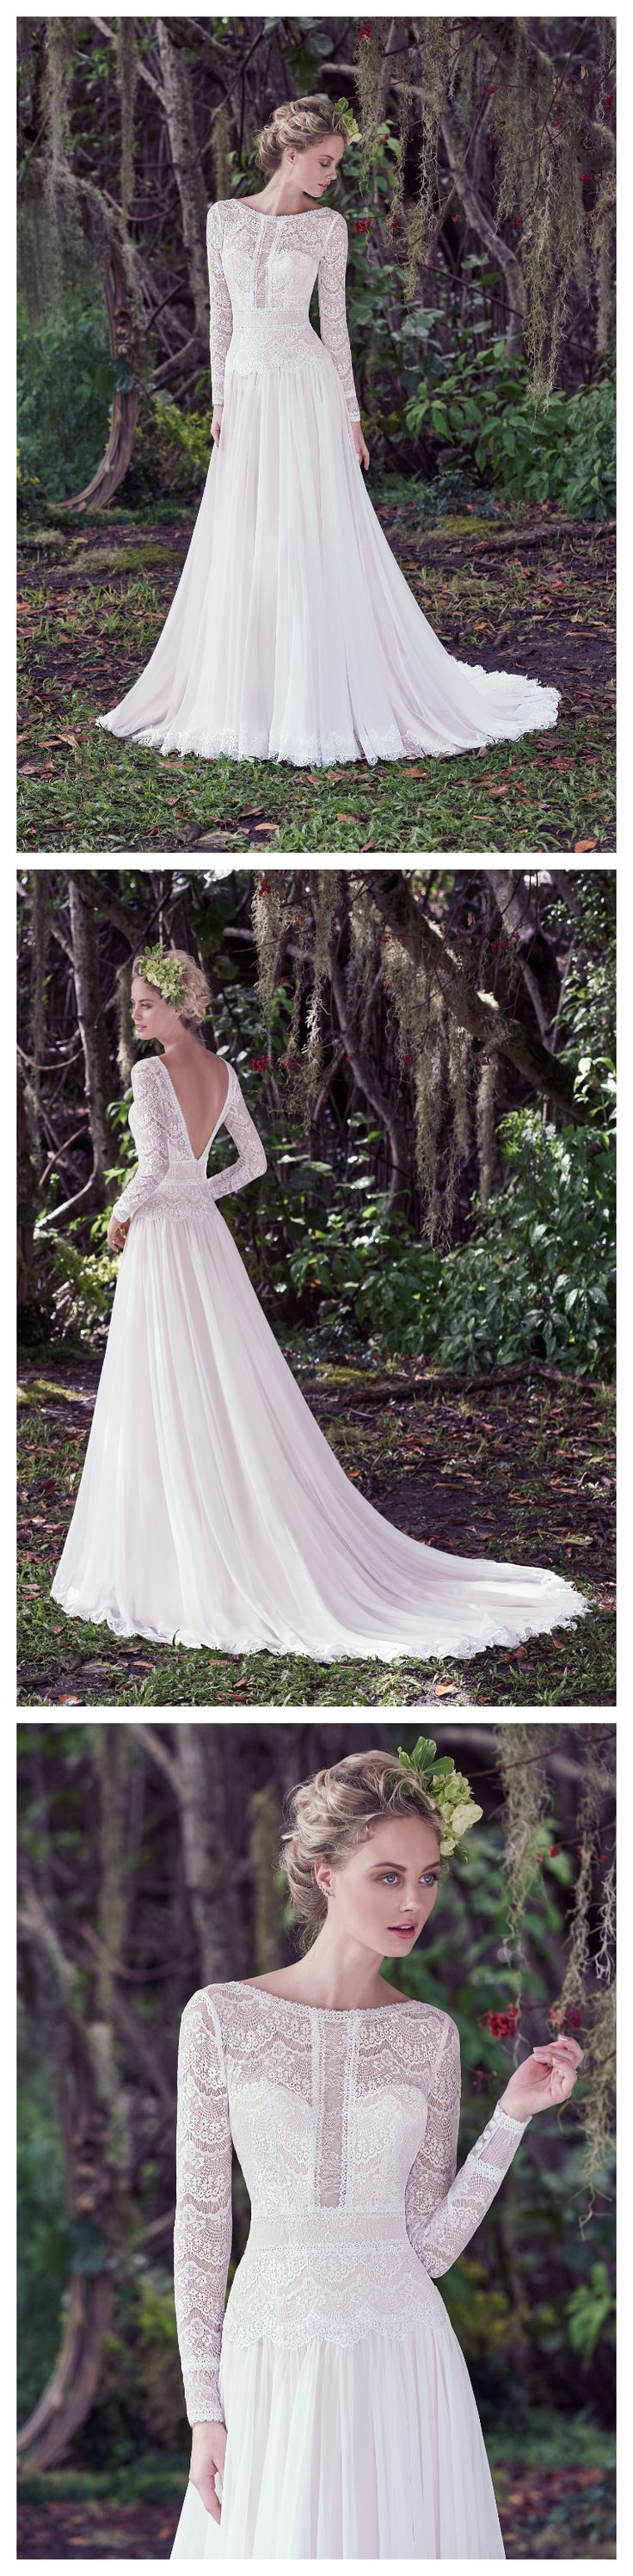 Deirdre by Maggie Sottero. This long sleeve wedding dress is made of subtle lace and Santorini chiffon. A-linegown, complete with bateau neckline,illusion lace details and stunning V-back. Finished with zipper closure.